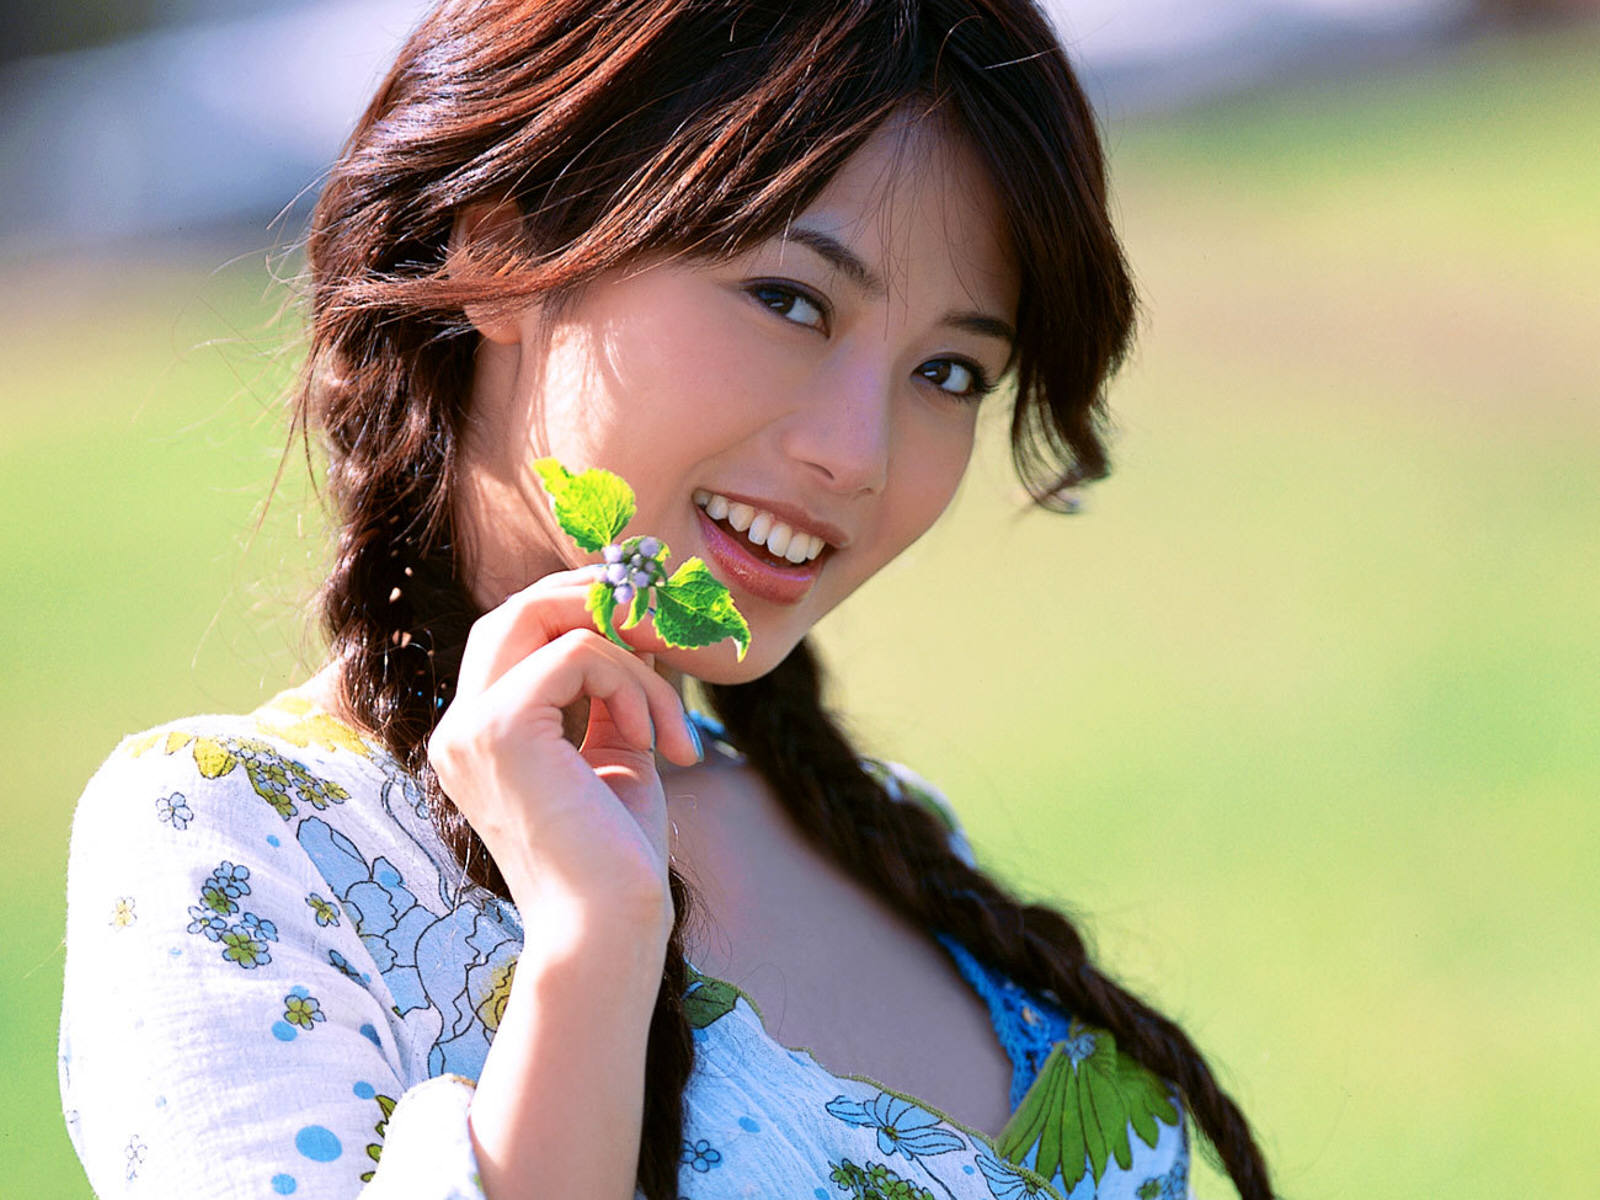 asian singles in accident Accident's best 100% free asian online dating site meet cute asian singles in pennsylvania with our free accident asian dating service loads of single asian men and women are looking for their match on the internet's best.